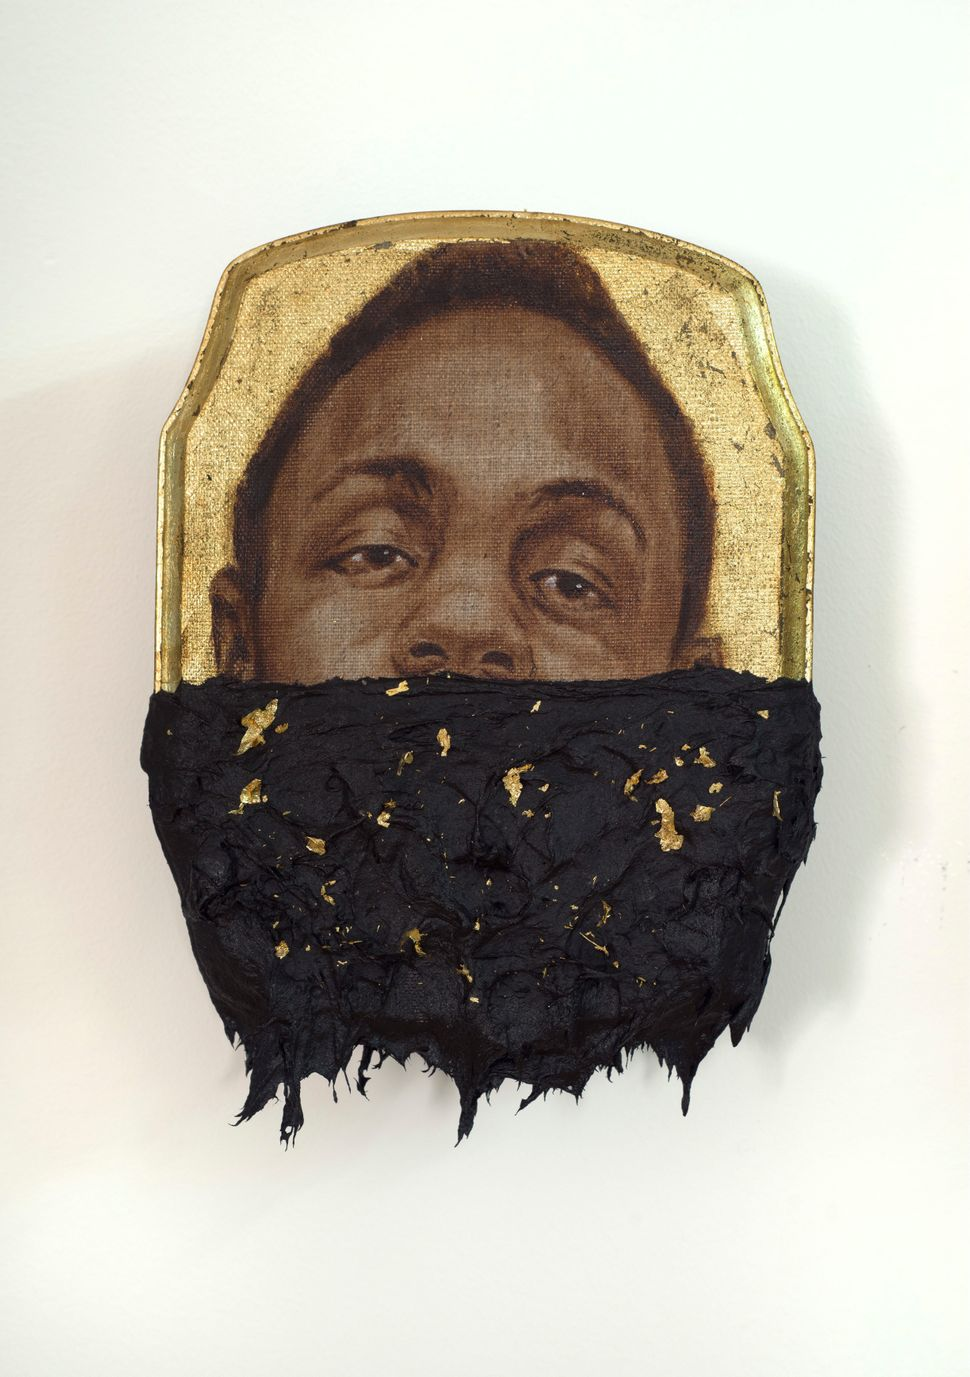 Jerome III, 2014 oil, gold leaf and tar on wood panel 10 x 7 x 1 inches © Titus Kaphar. Courtesy of the artist and Jack Shain